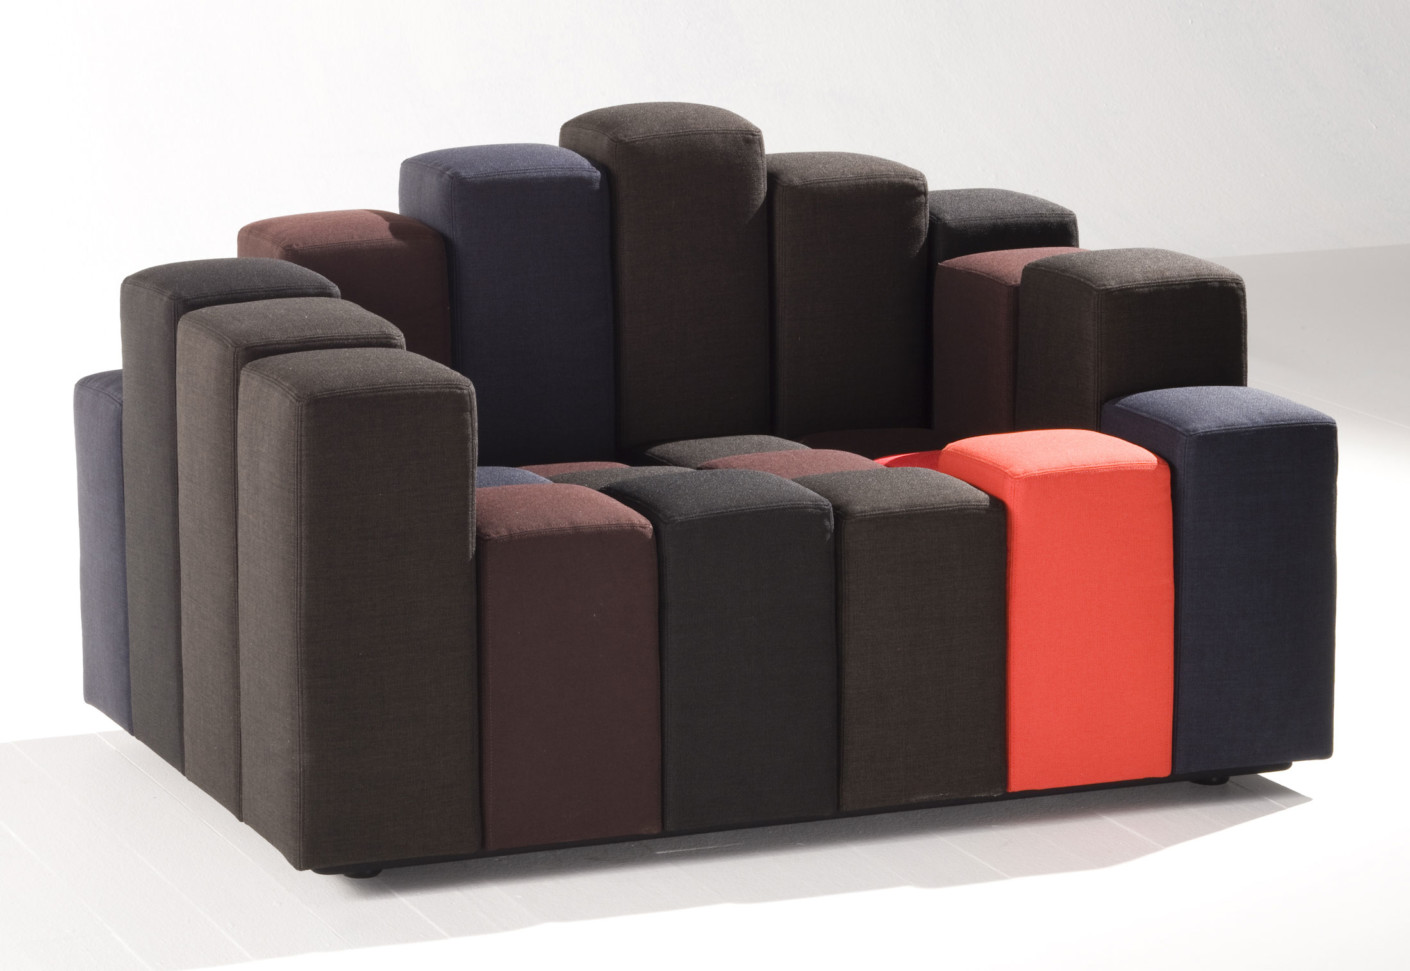 Boxspringbetten Bei Ikea Do-lo-rez 2-seater By Moroso | Stylepark